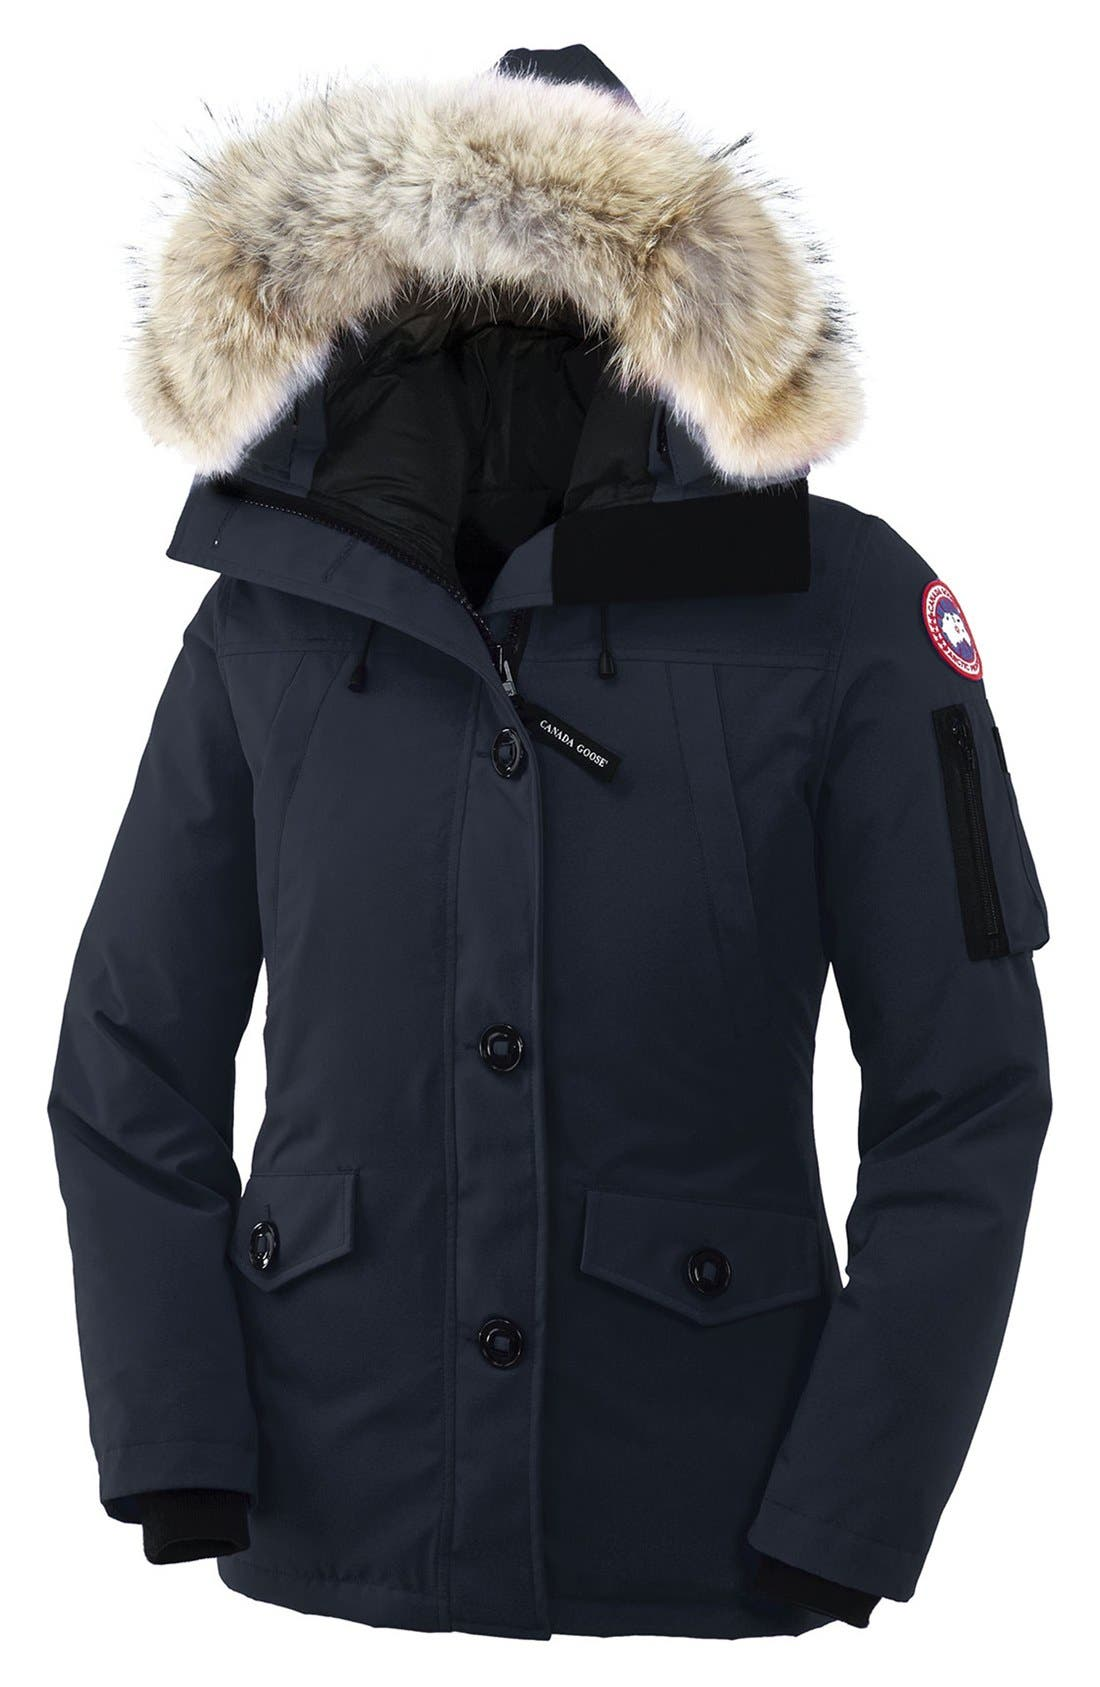 Montebello Slim Fit Down Parka with Genuine Coyote Fur Trim,                             Main thumbnail 1, color,                             NAVY